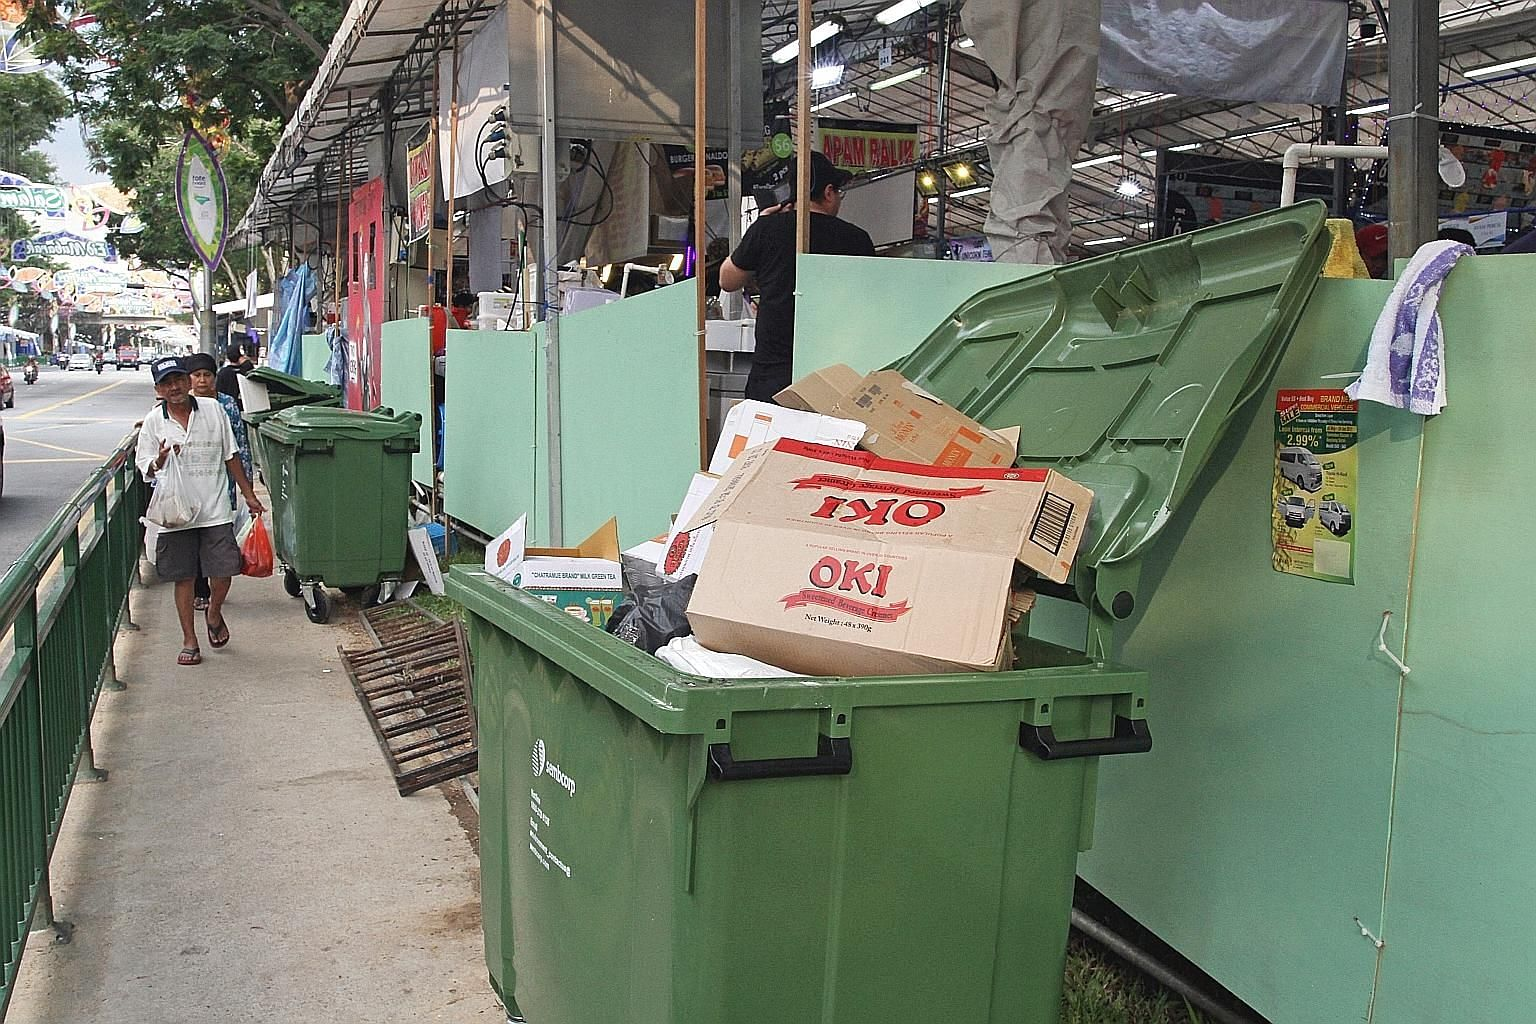 Rubbish bins at the back of food stalls along the street in Geylang Serai are sometimes left open. NEA made more than 148,500 inspections and took over 3,200 enforcement actions against food outlets last year, up from about 146,500 inspections and ab